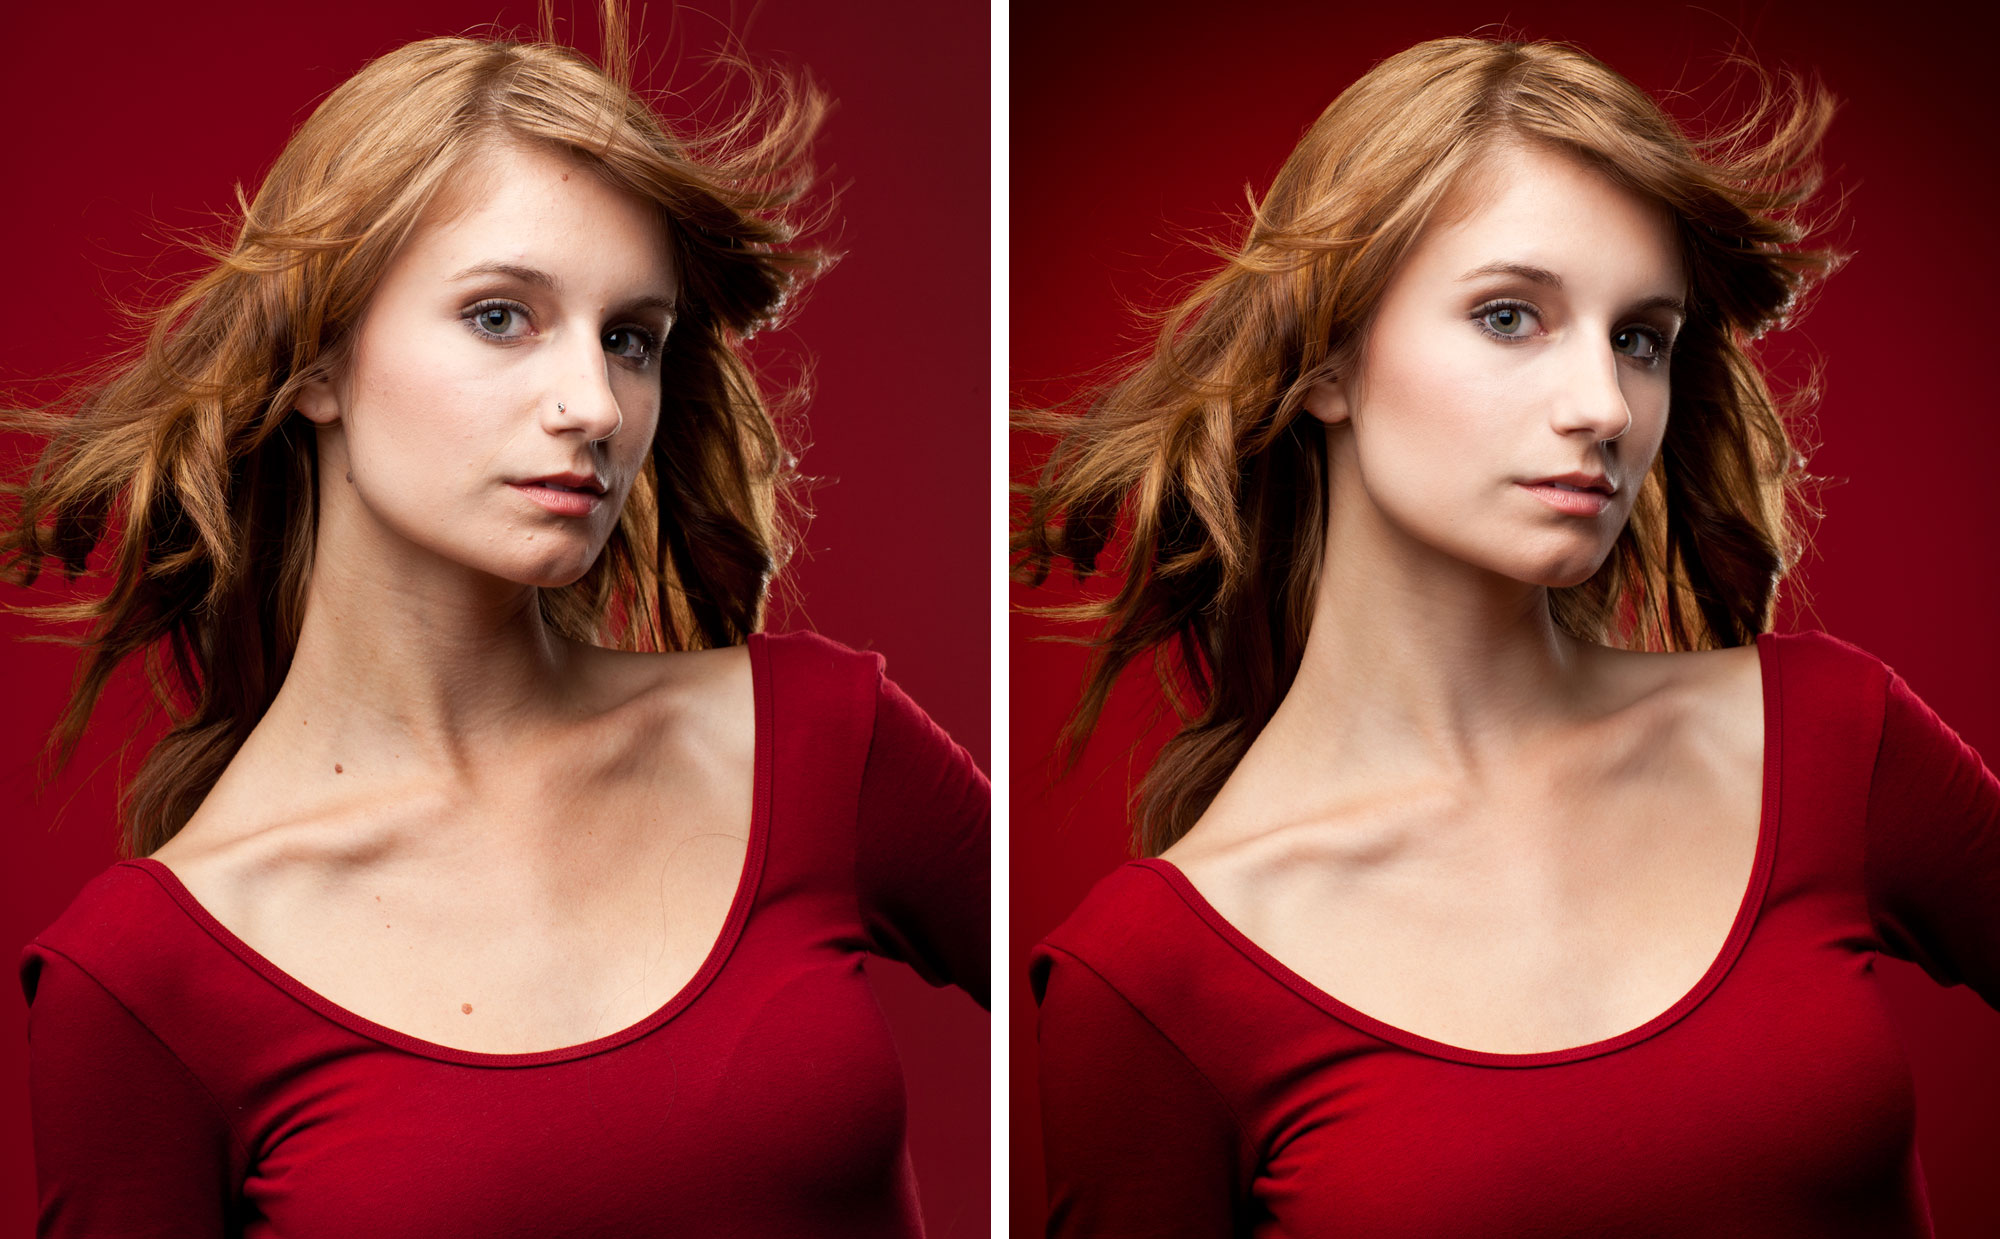 Professional Retouching I: Glamour Portrait #2 by Alex Kay